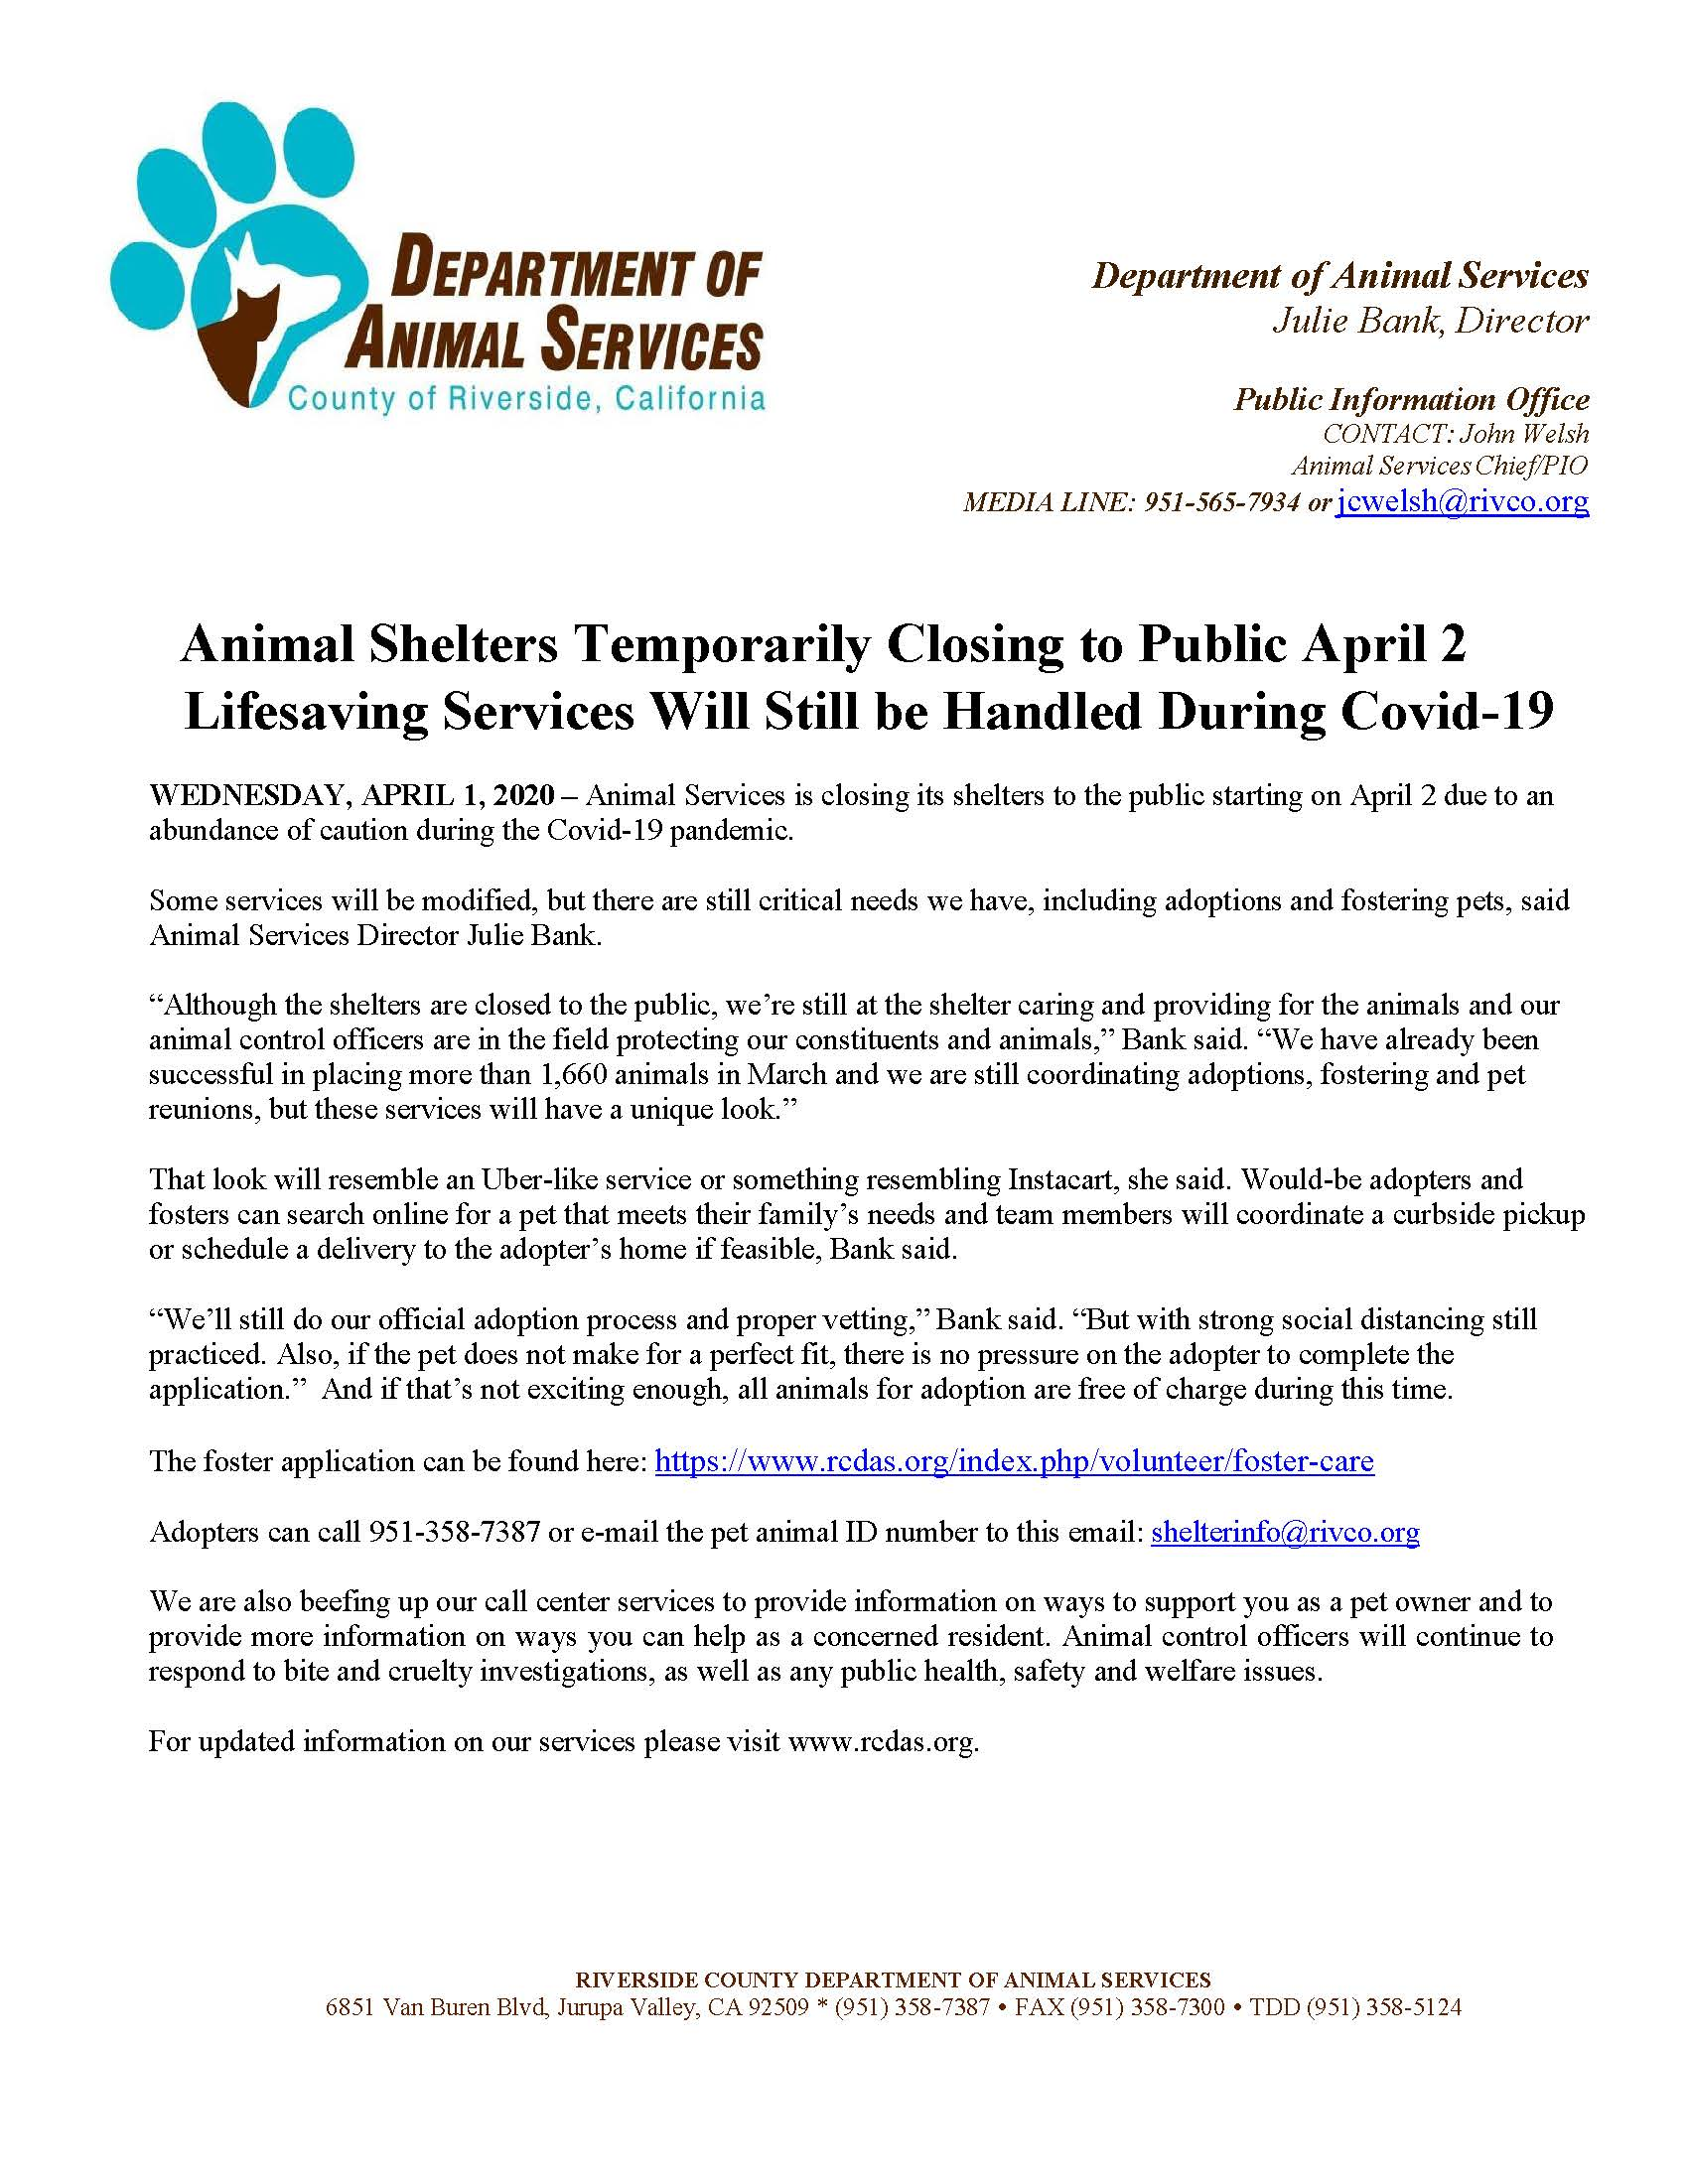 NEWS from Riverside County Animal Services-Shelters to Close Starting April 2